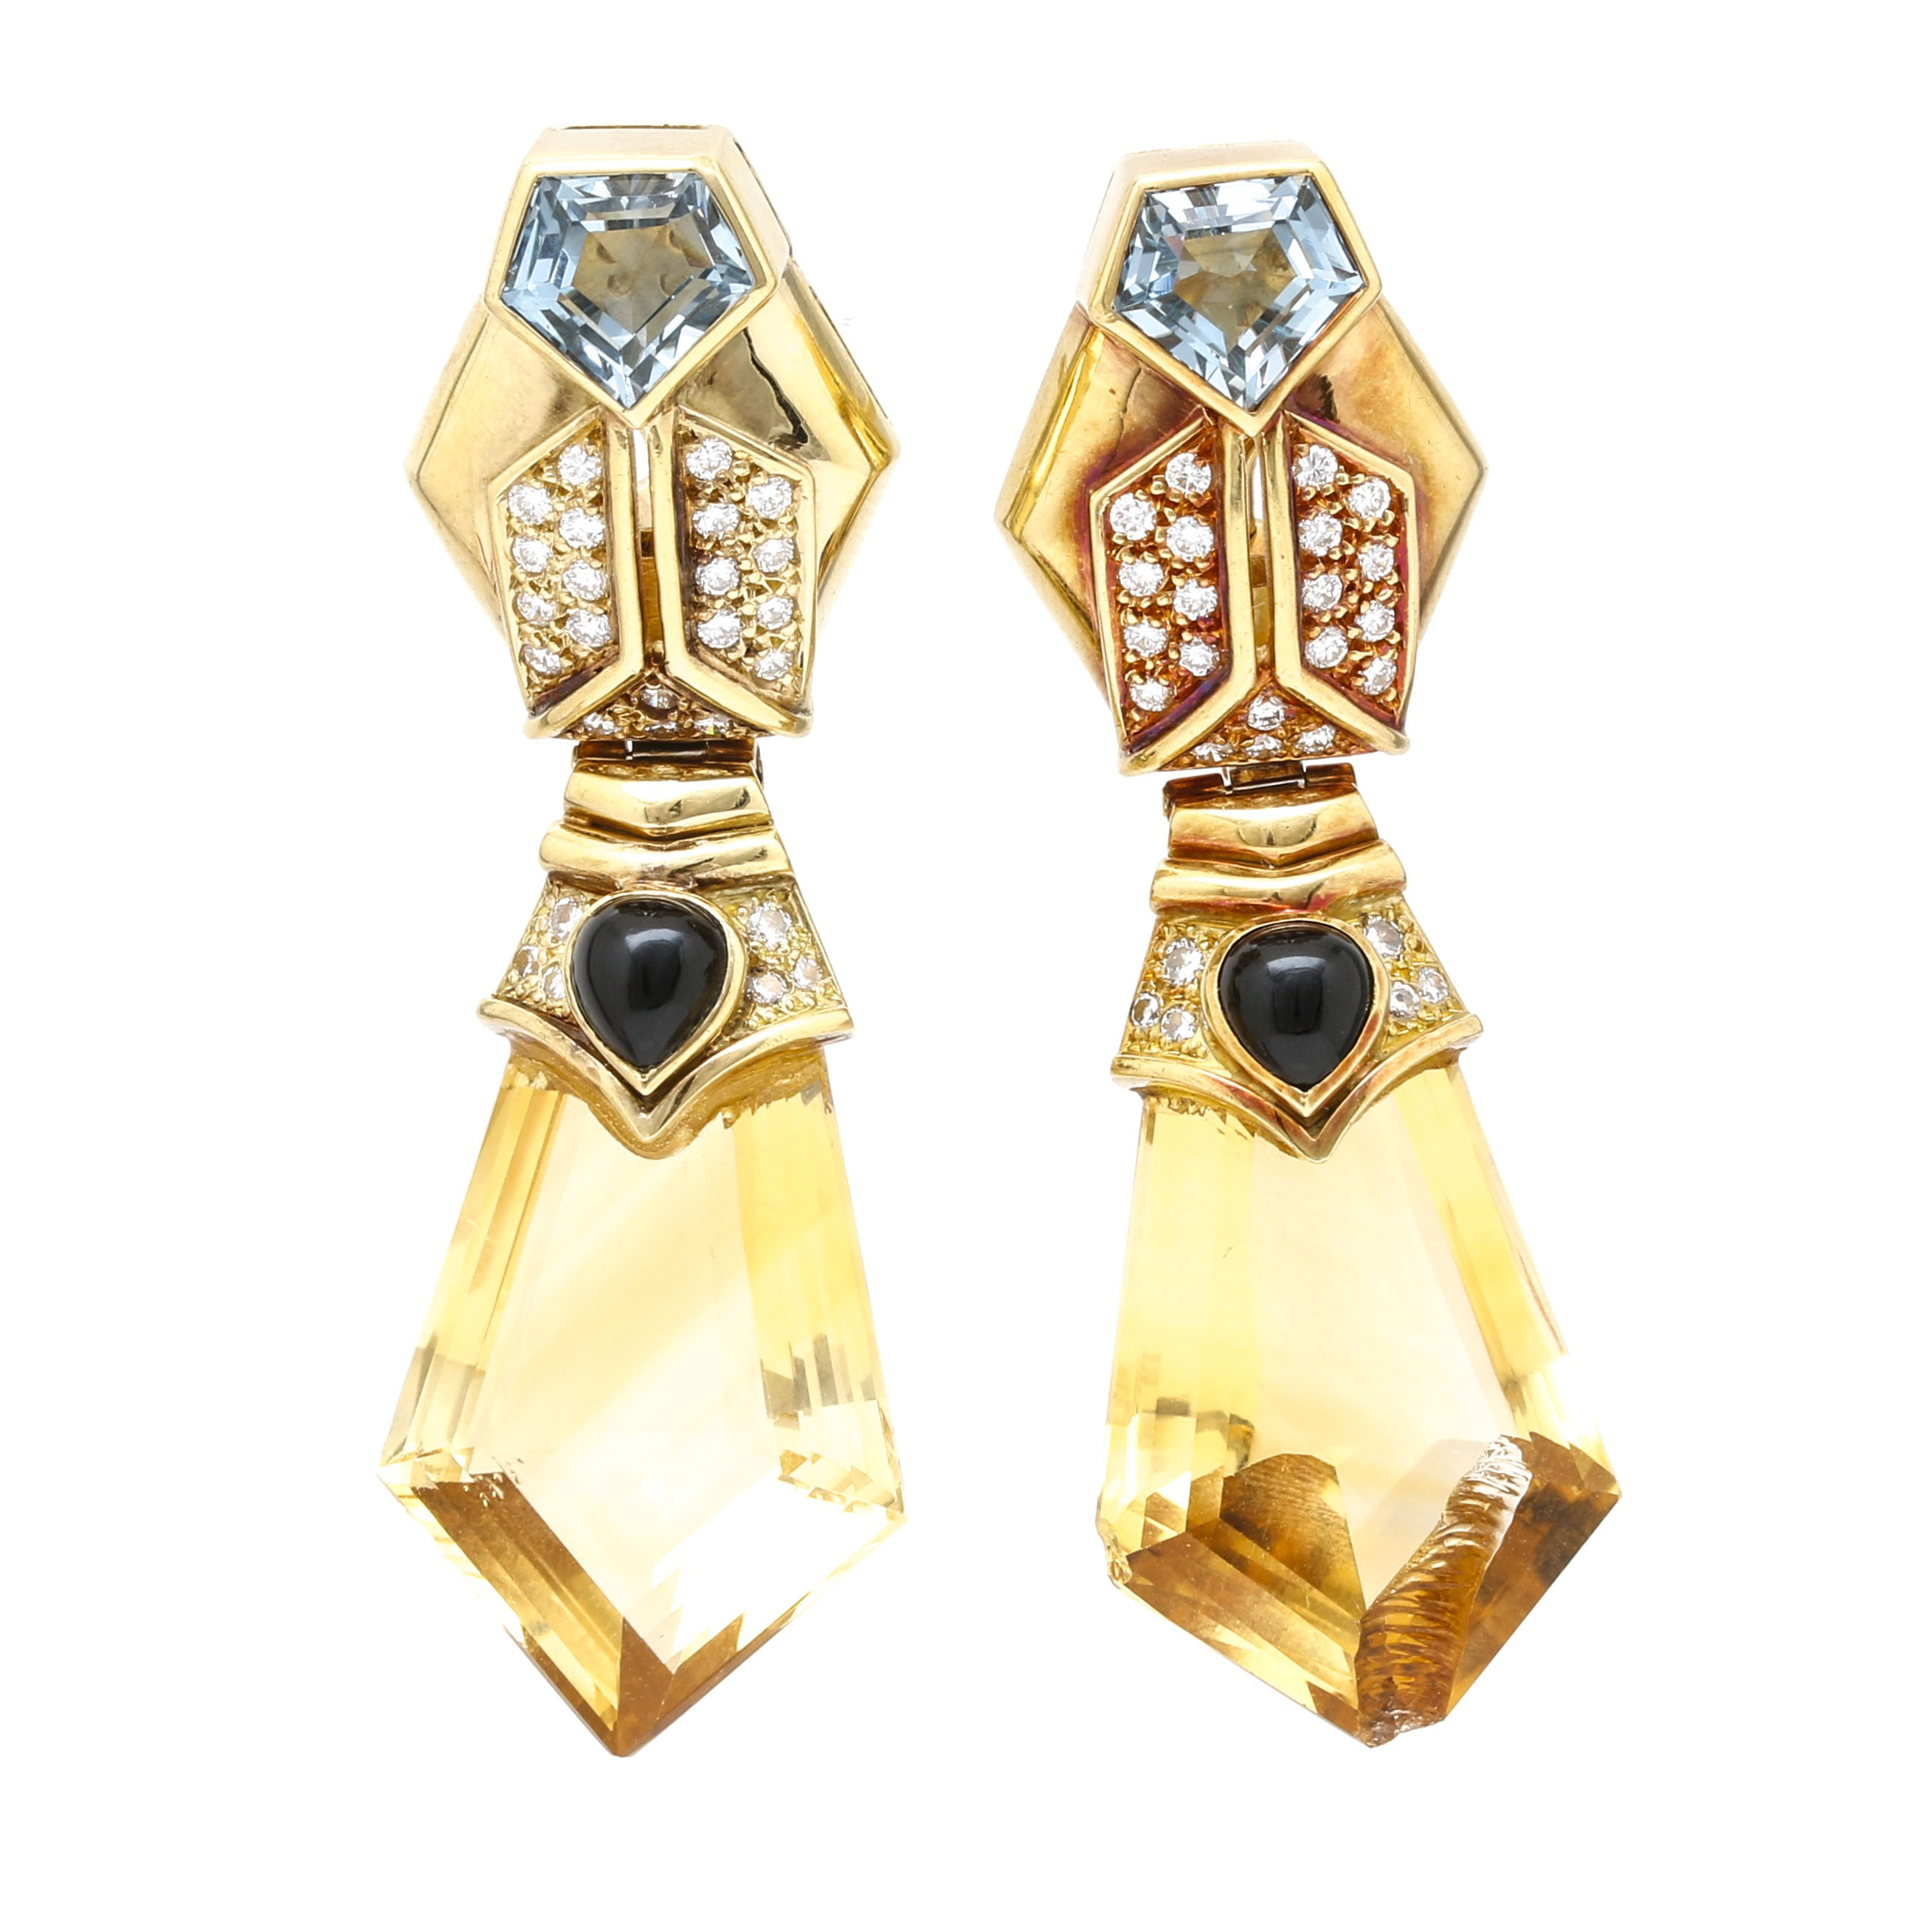 18K Two-Tone Gold Diamond, Citrine, and Blue Topaz, and Onyx Convertible Stud or Drop Earrings